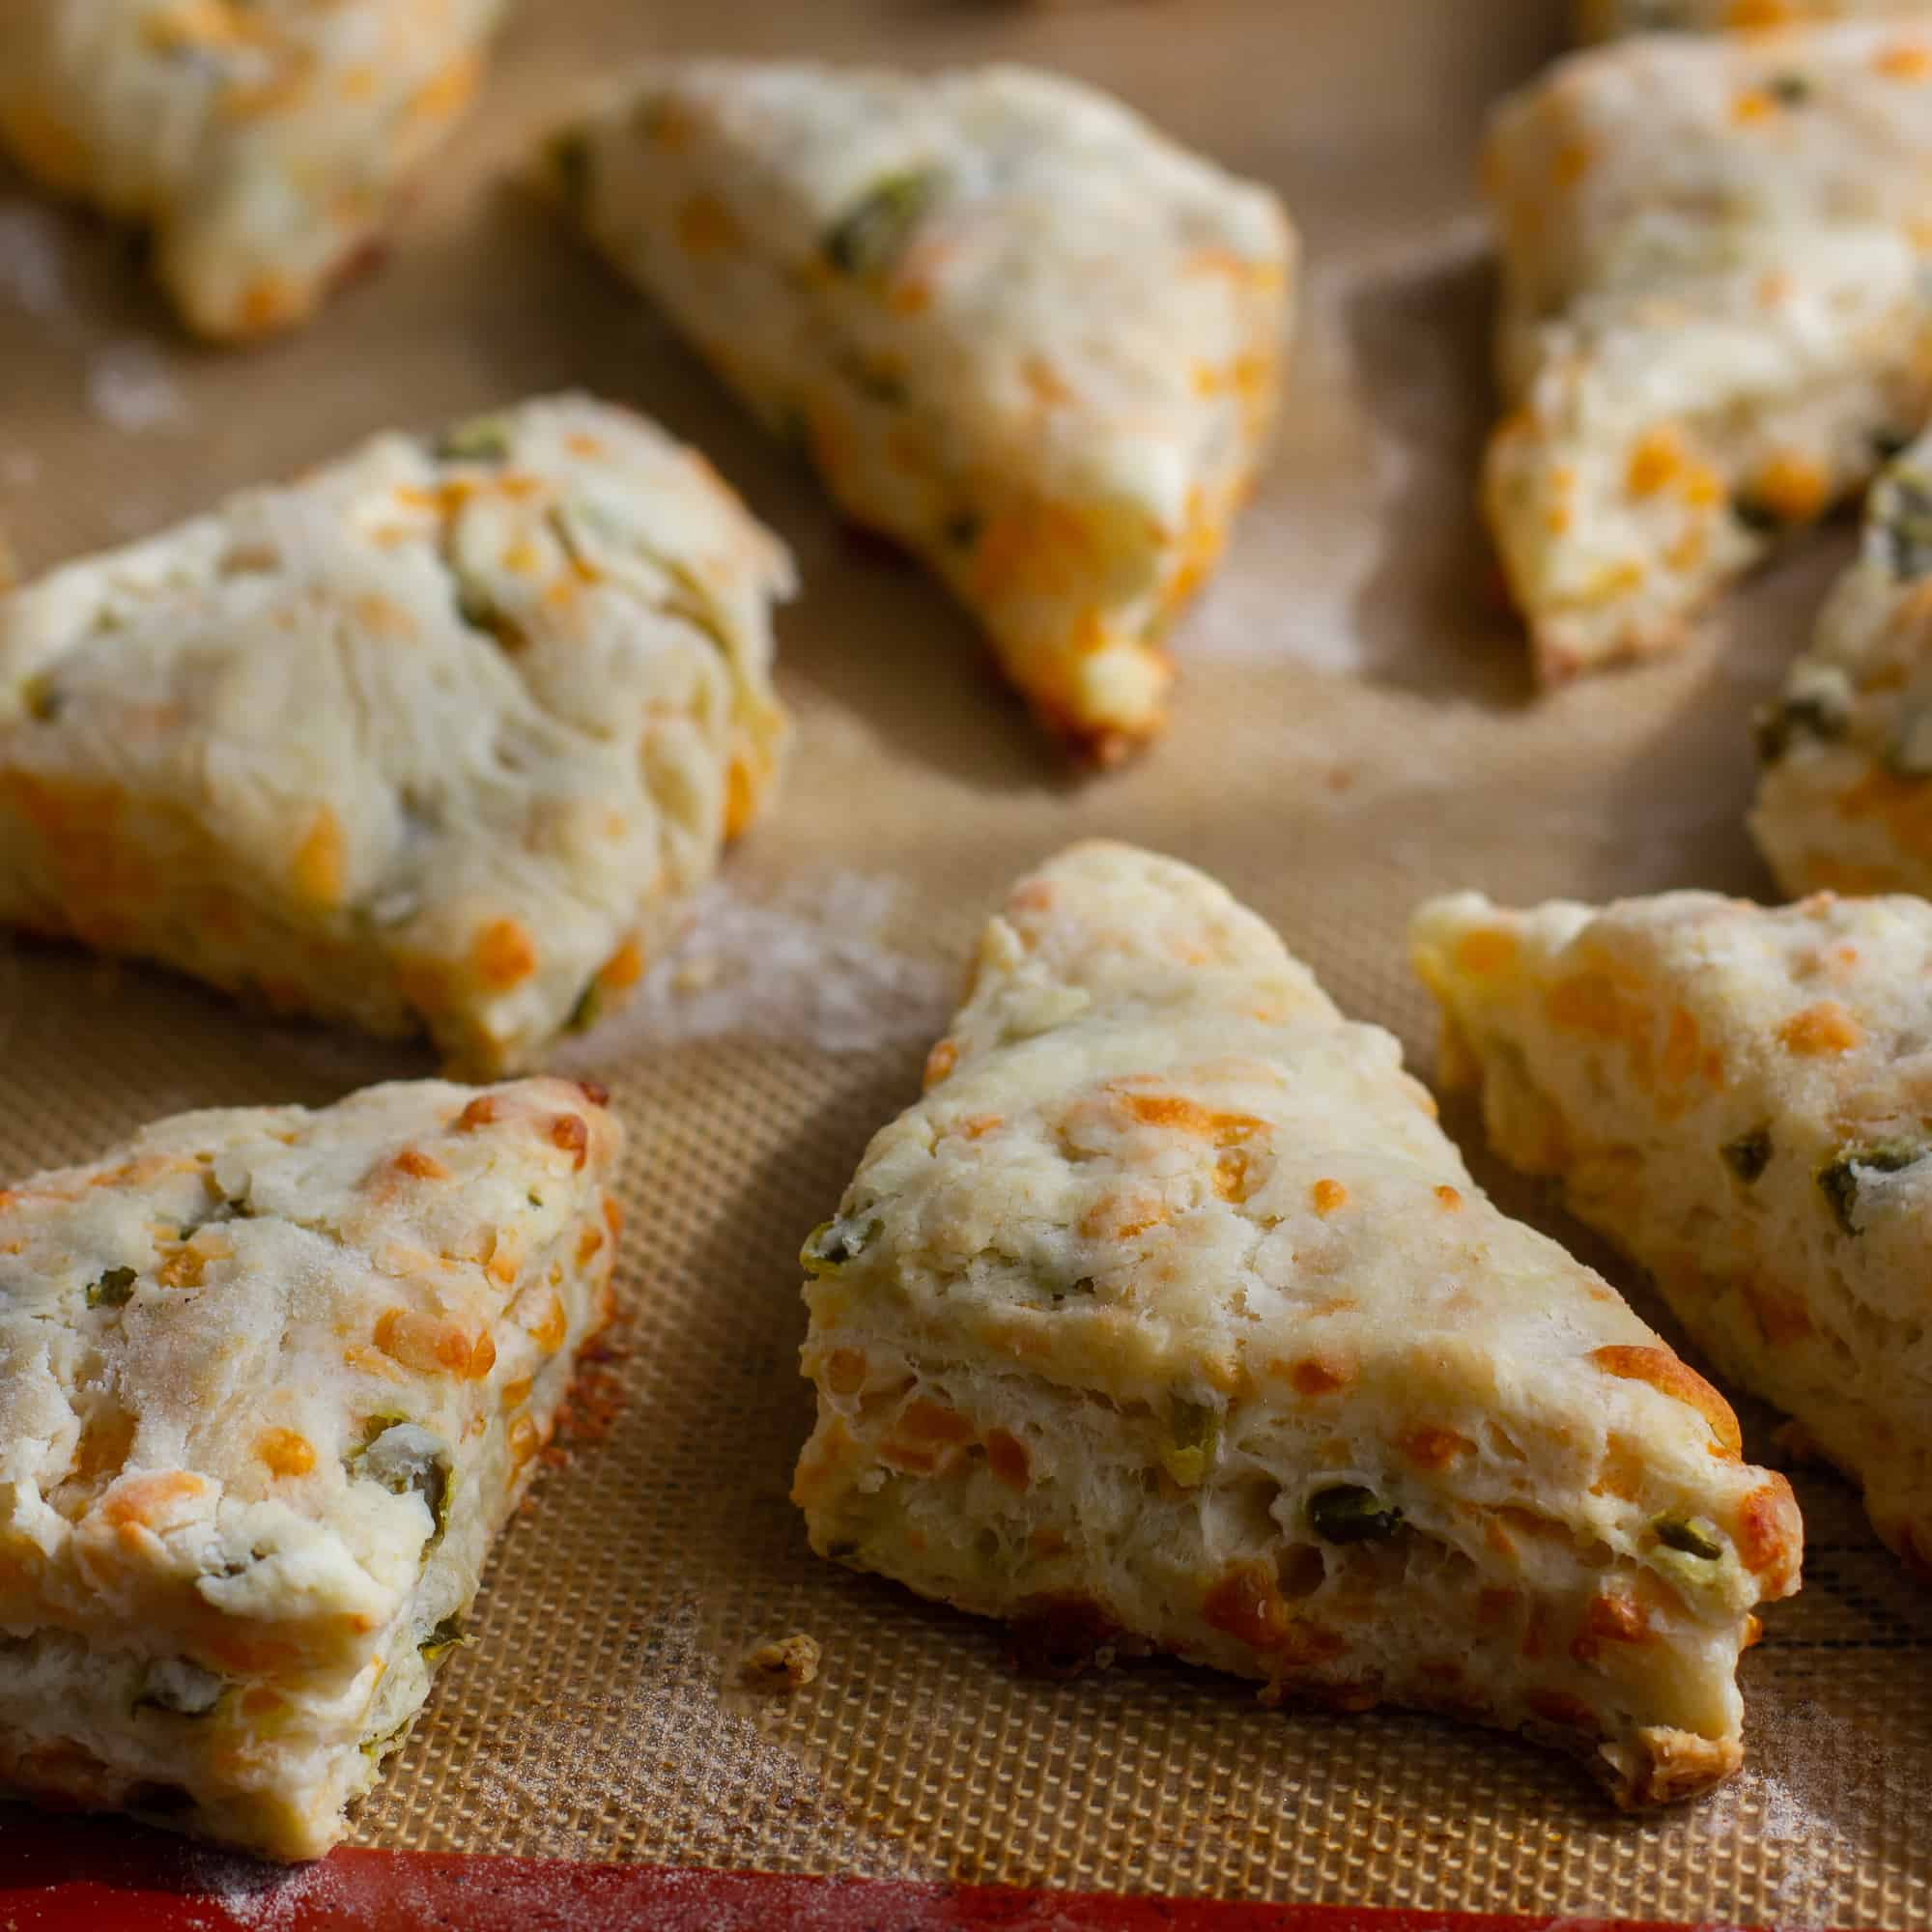 Fresh baked cheddar jalapeno scones are biscuits that have lots of cheddar cheese and minced pickled jalapeño peppers. Best served warm with soup or chili!